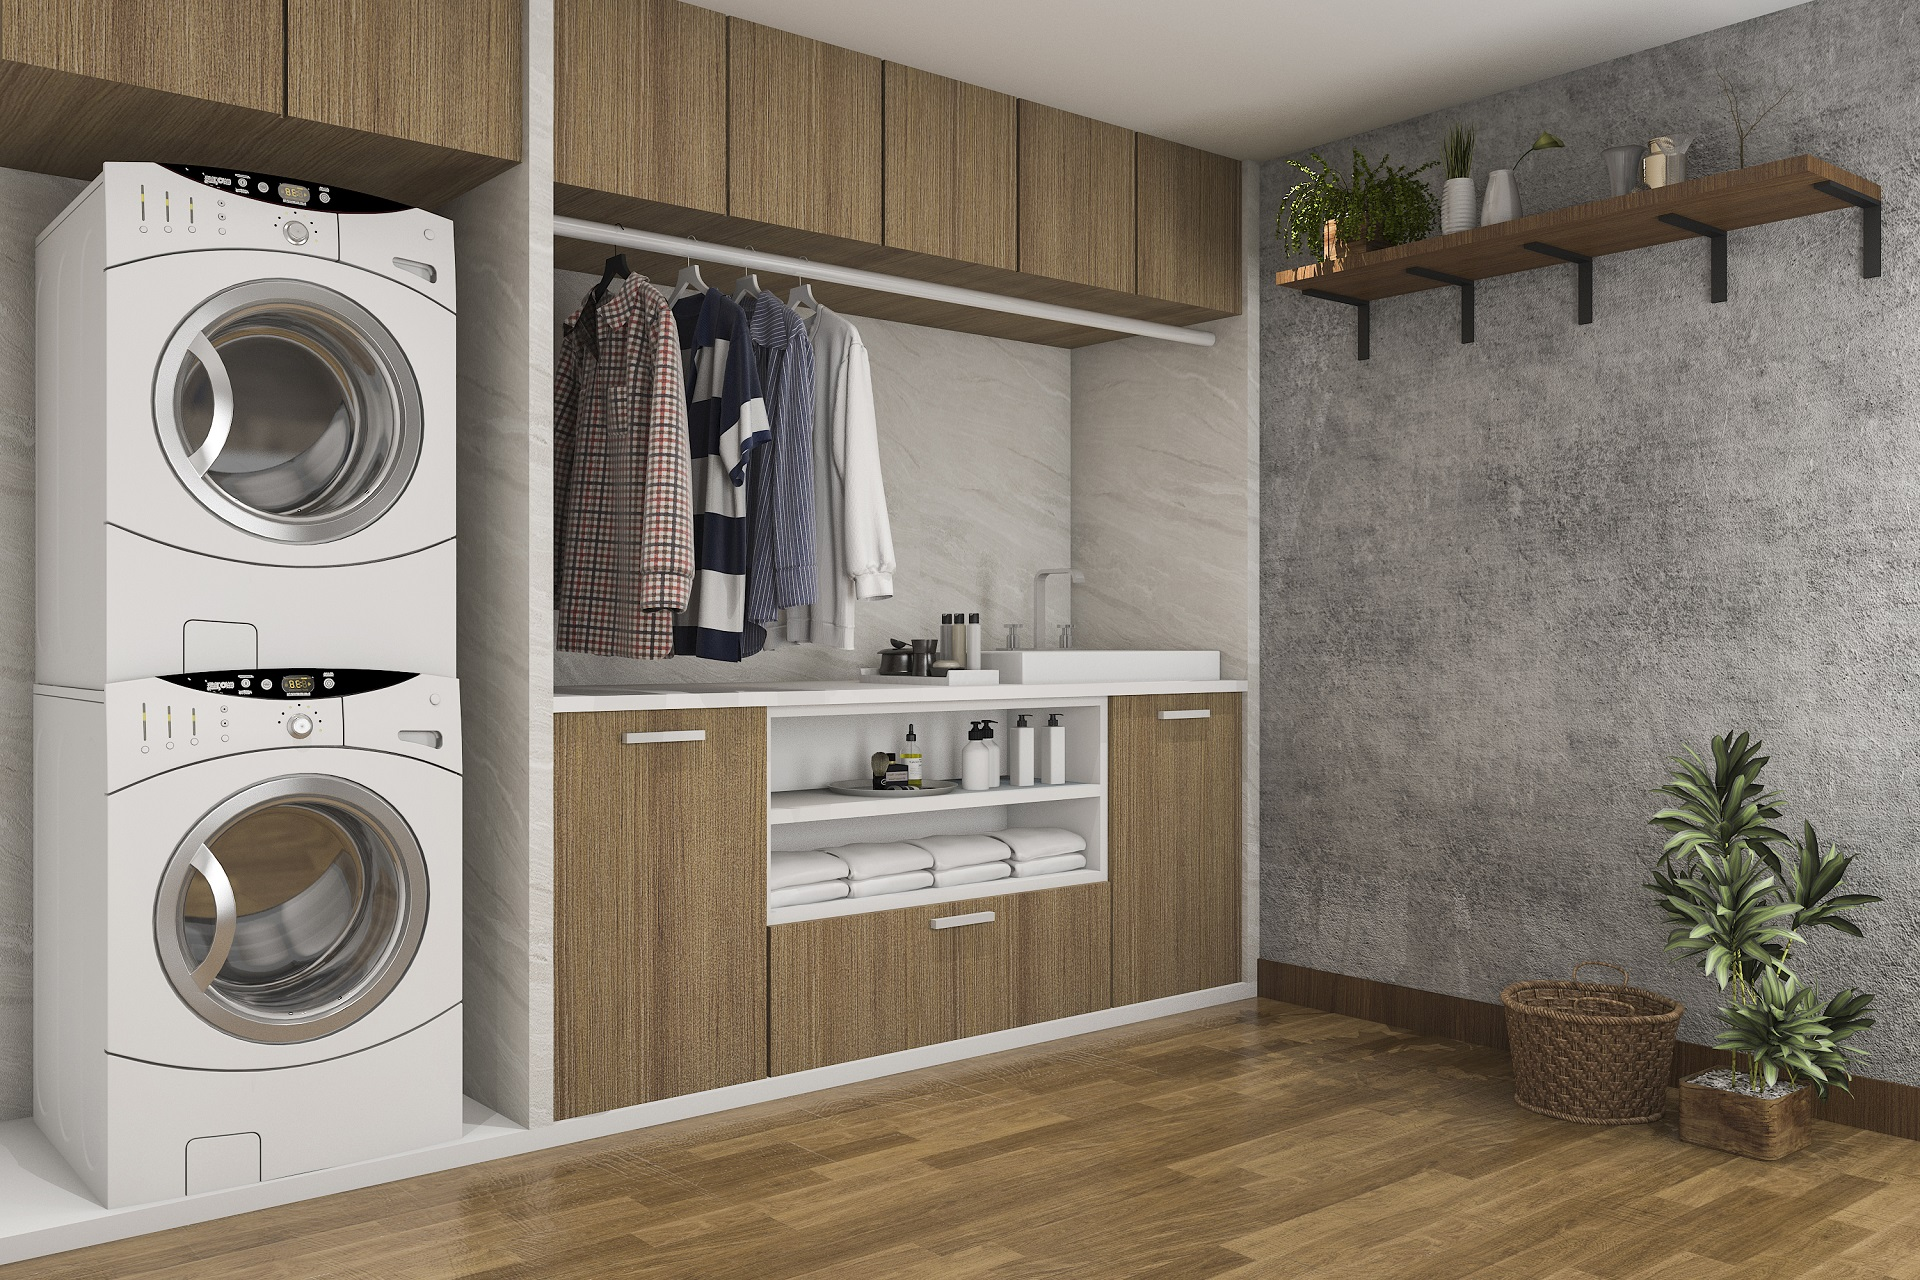 6 Clever laundry room ideas